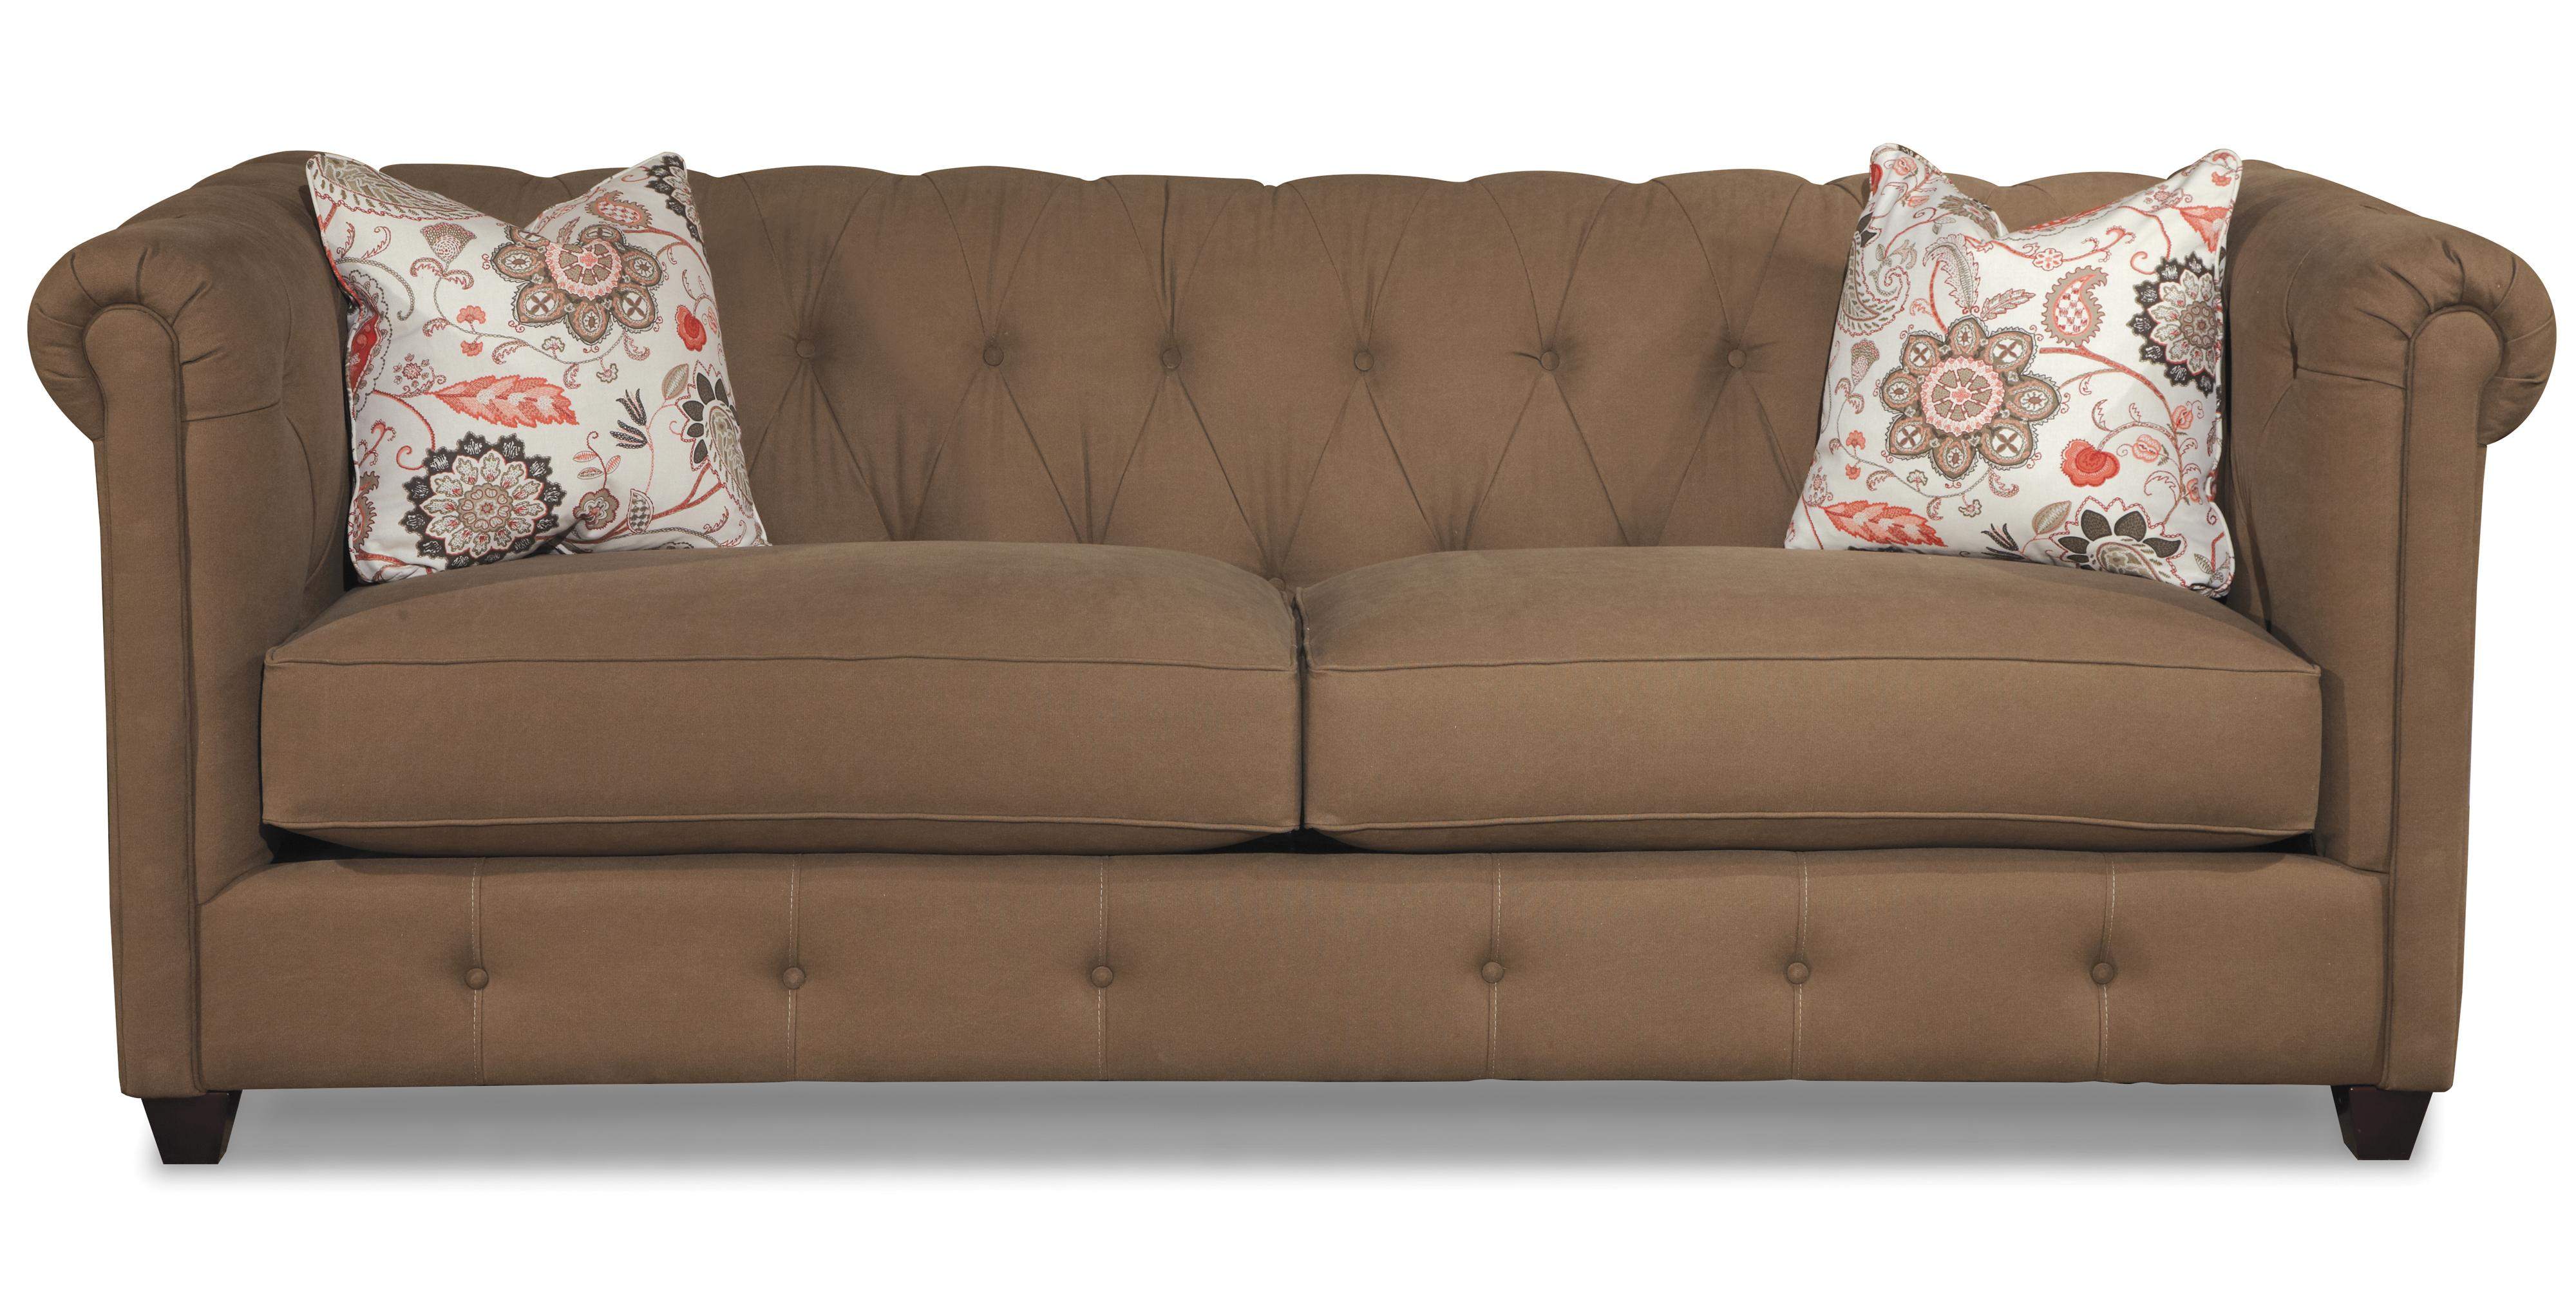 Klaussner Beech Mountain Traditional Chesterfield Sofa - Item Number: D45200 S